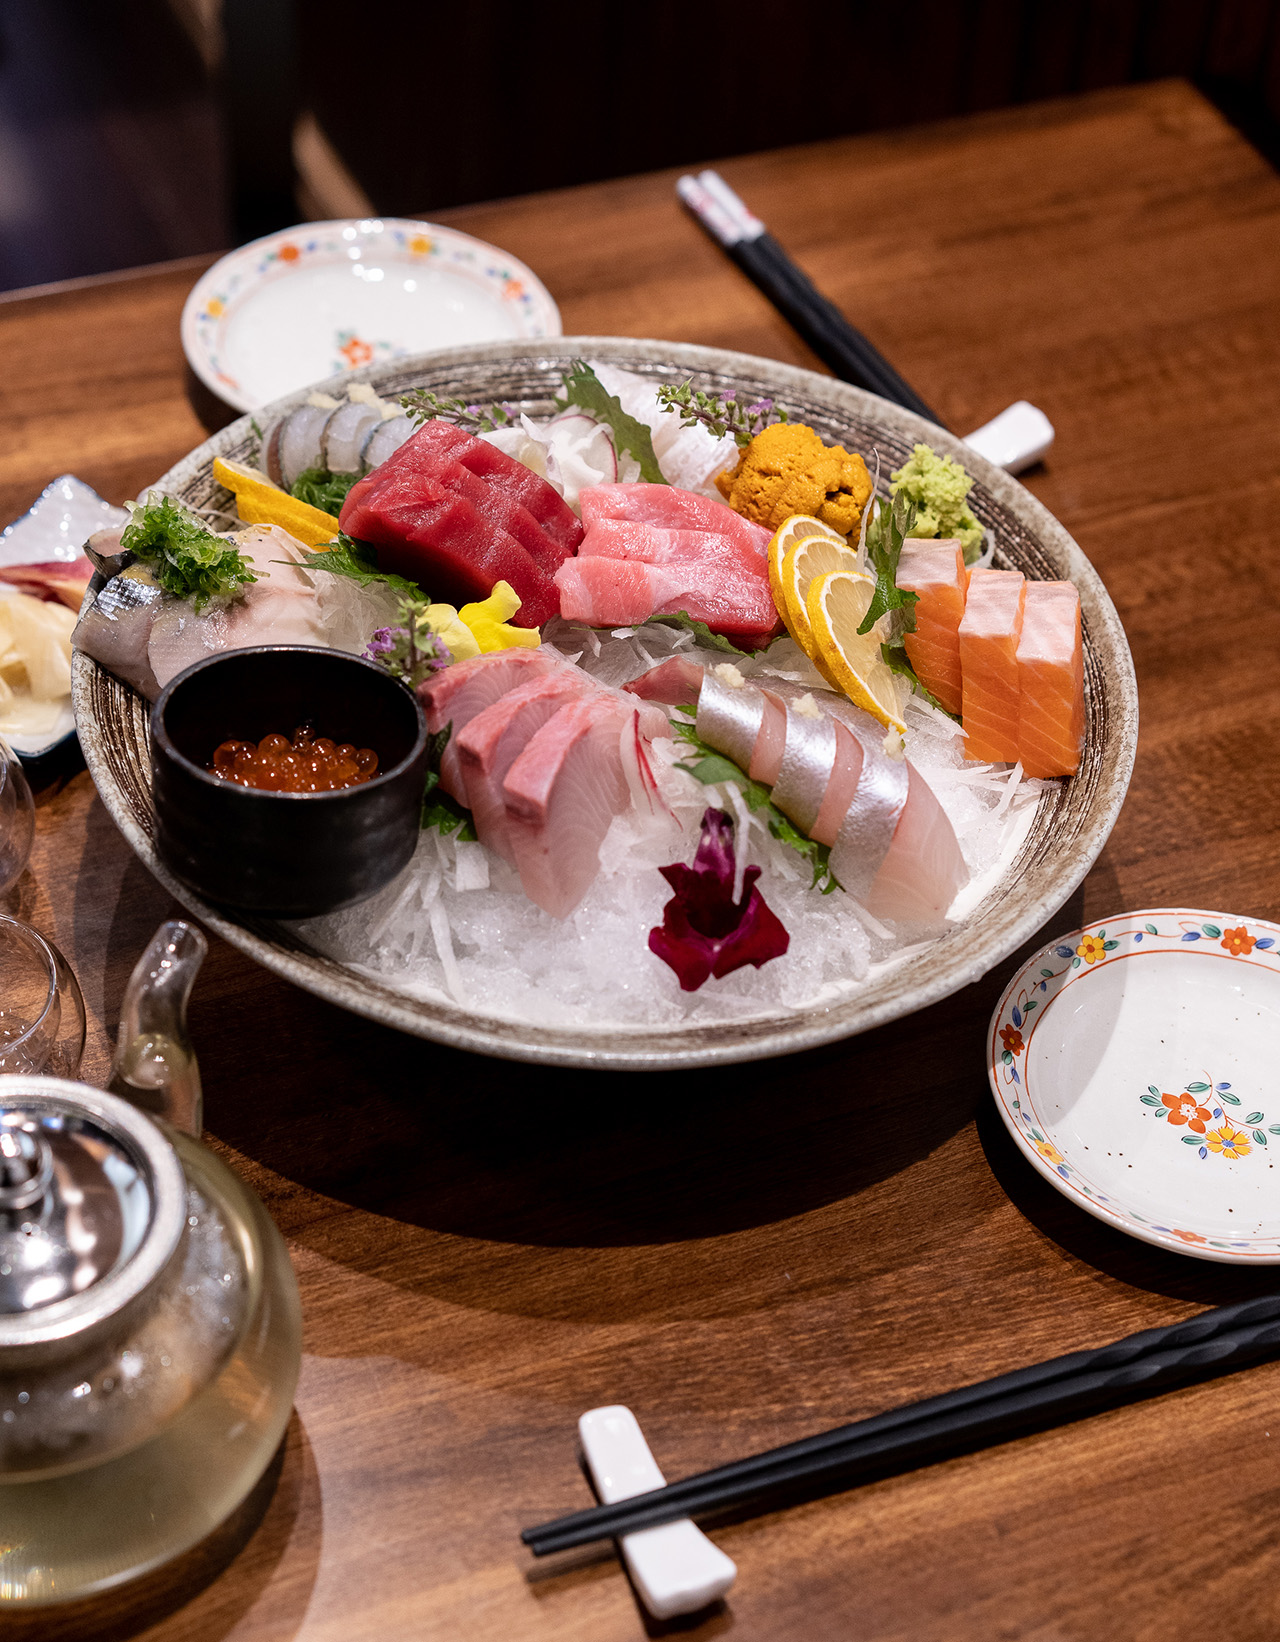 An indulgent sashimi meal for two.